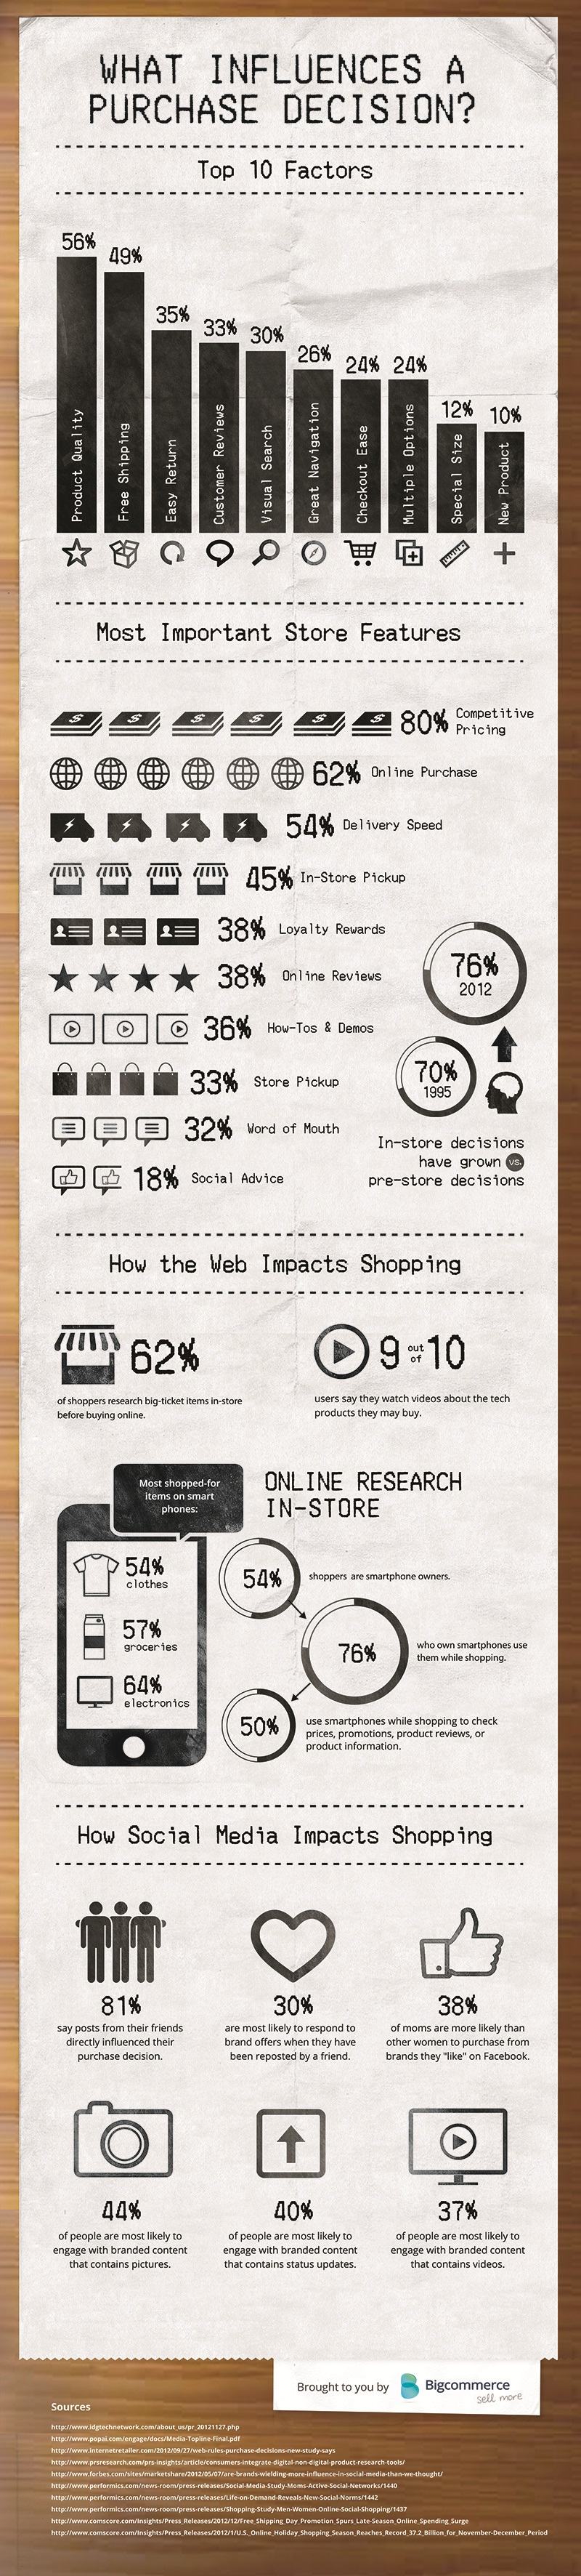 Purchase Decision Factors-Infographic